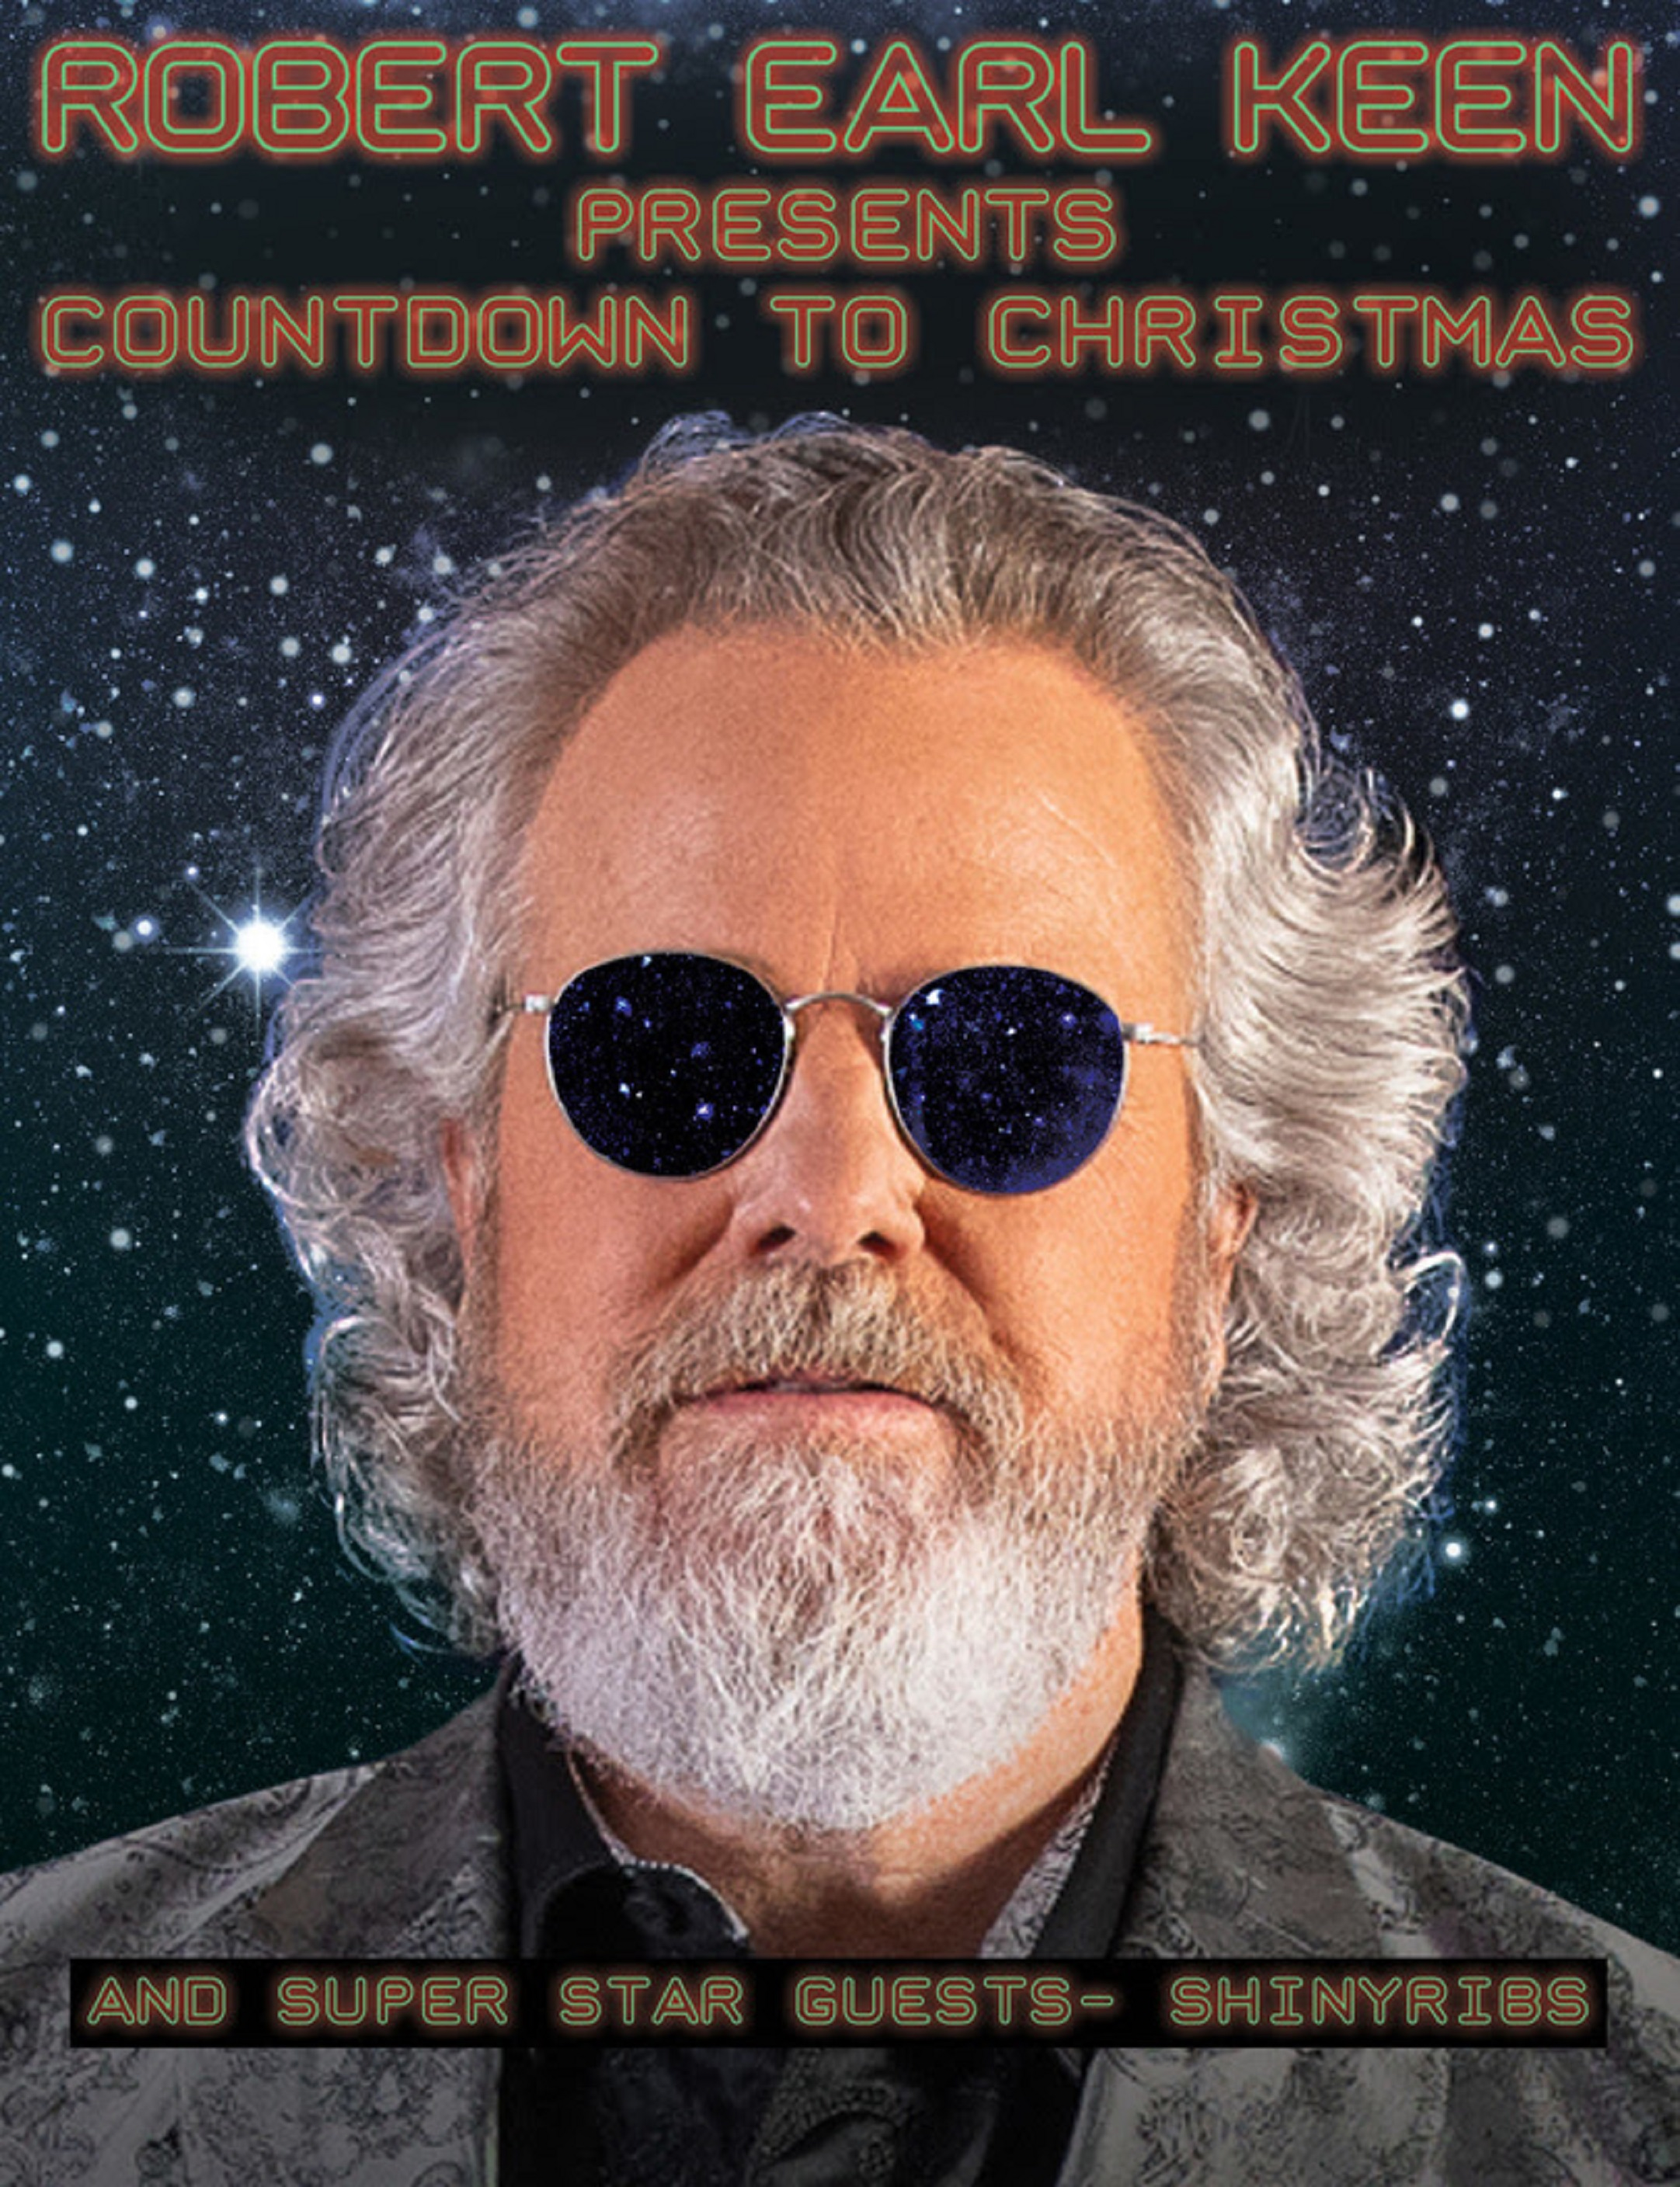 Robert Earl Keen Celebrates Christmas to the Moon and Back